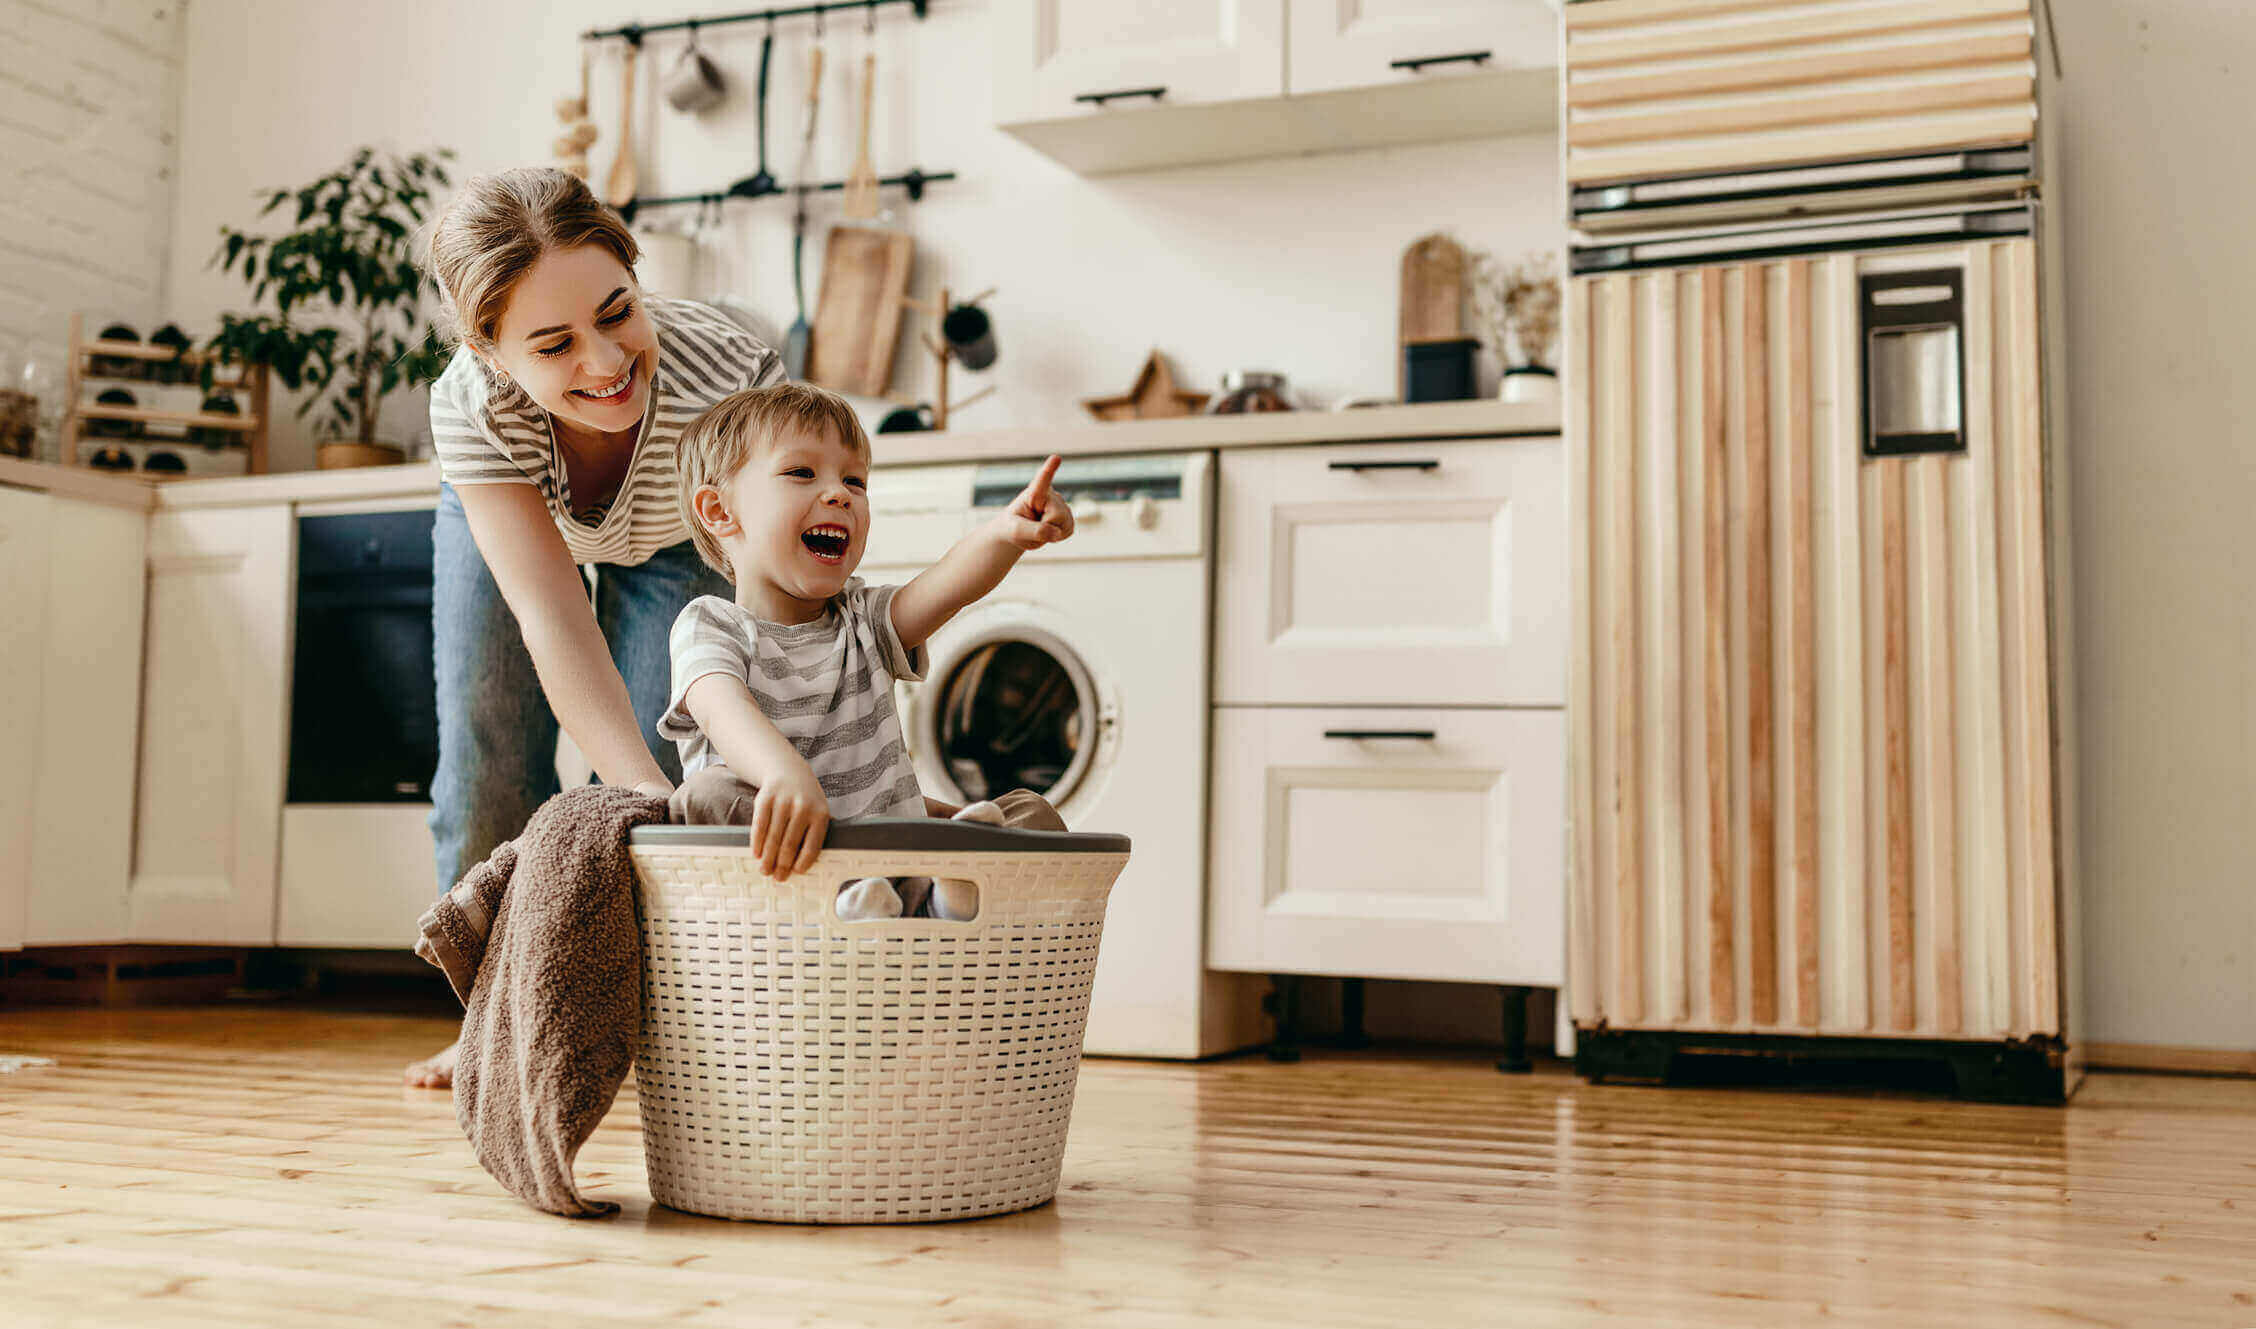 Mom and kid in laundry basket